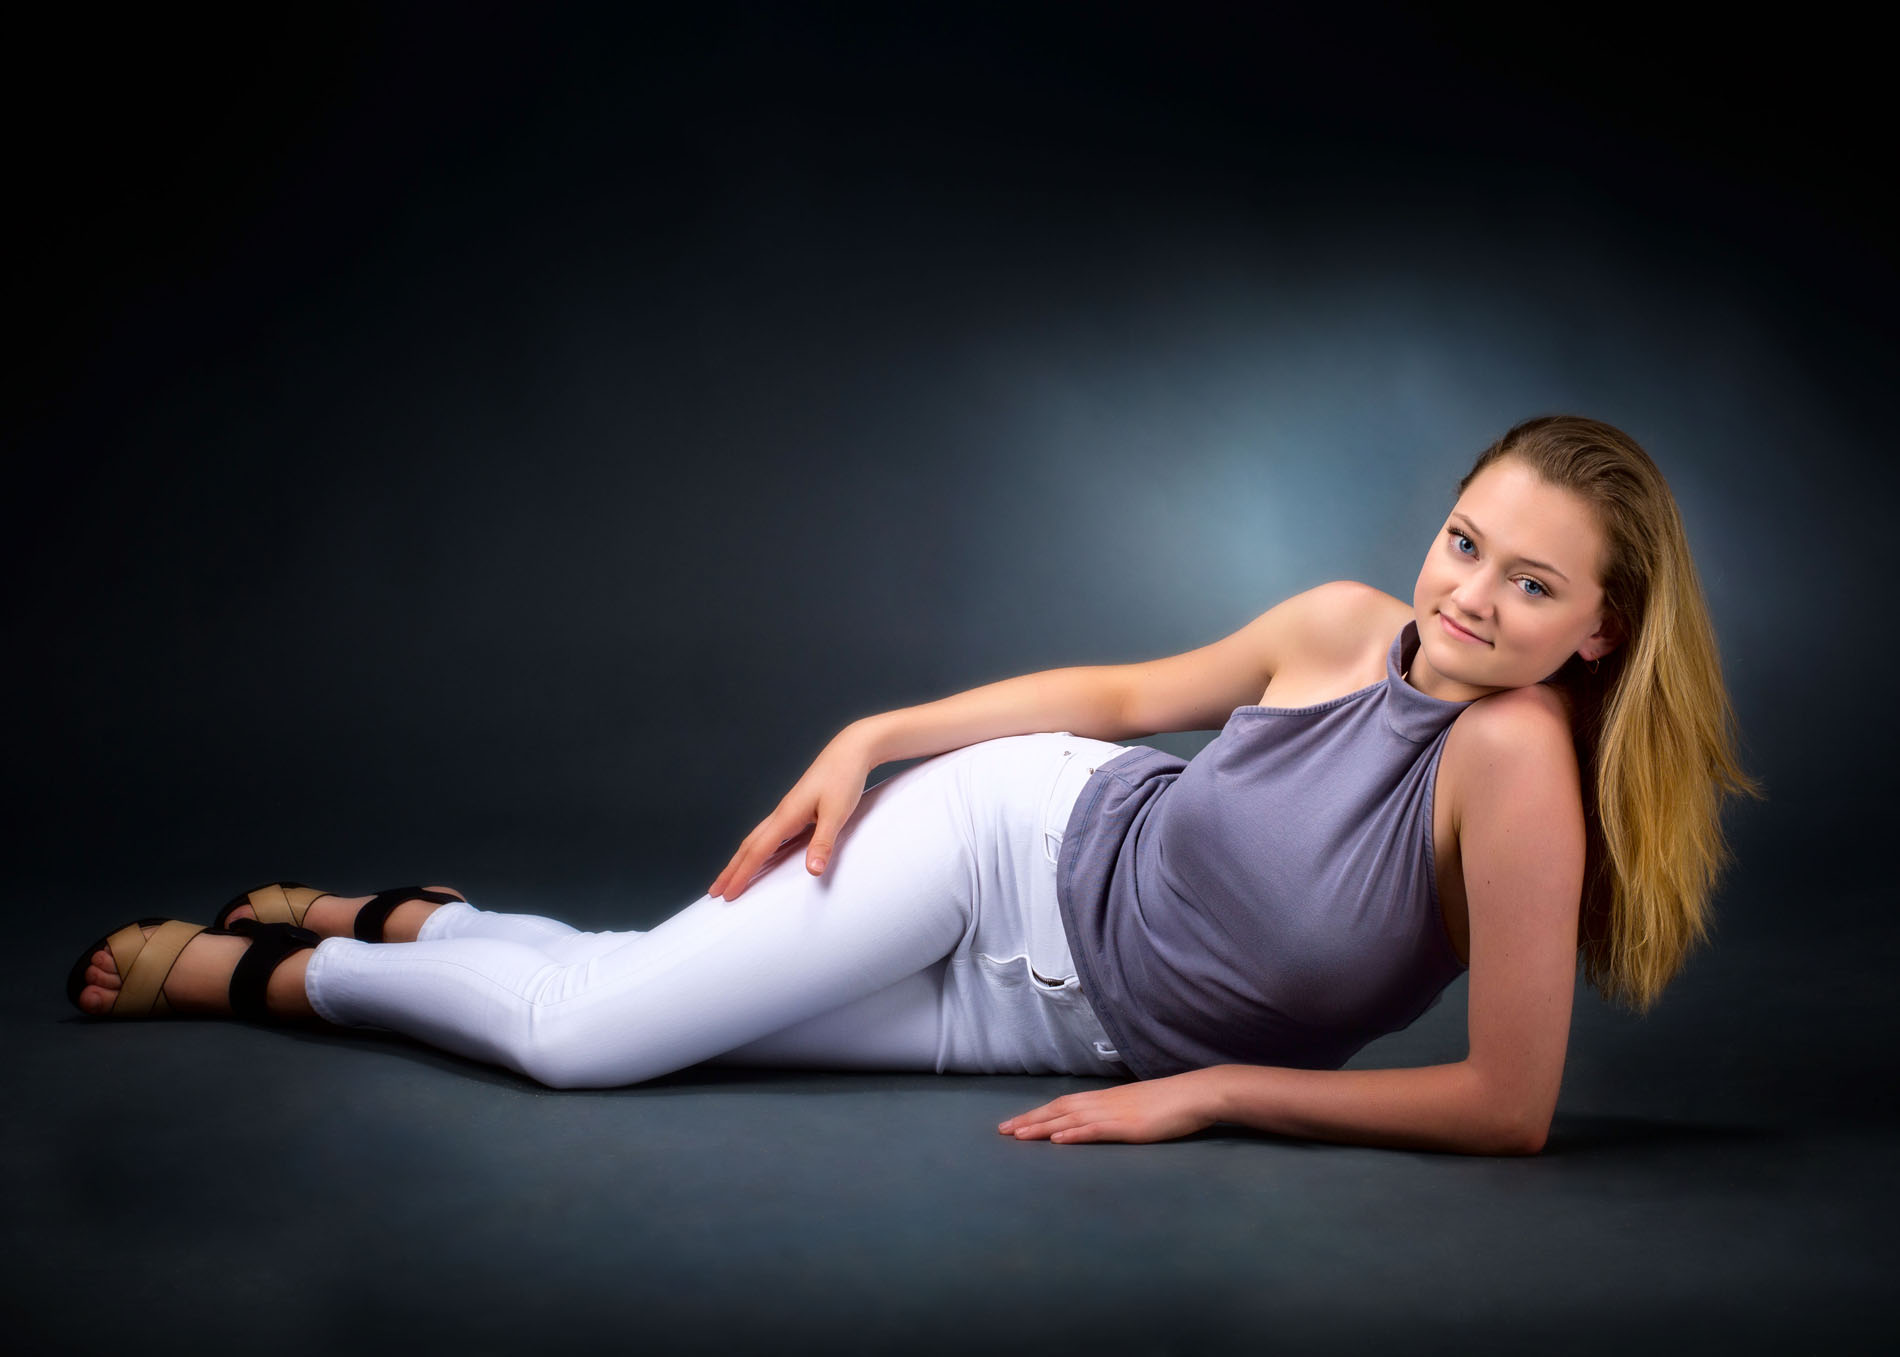 girl wearing white pants and gray top lying on ground for senior photo in studio